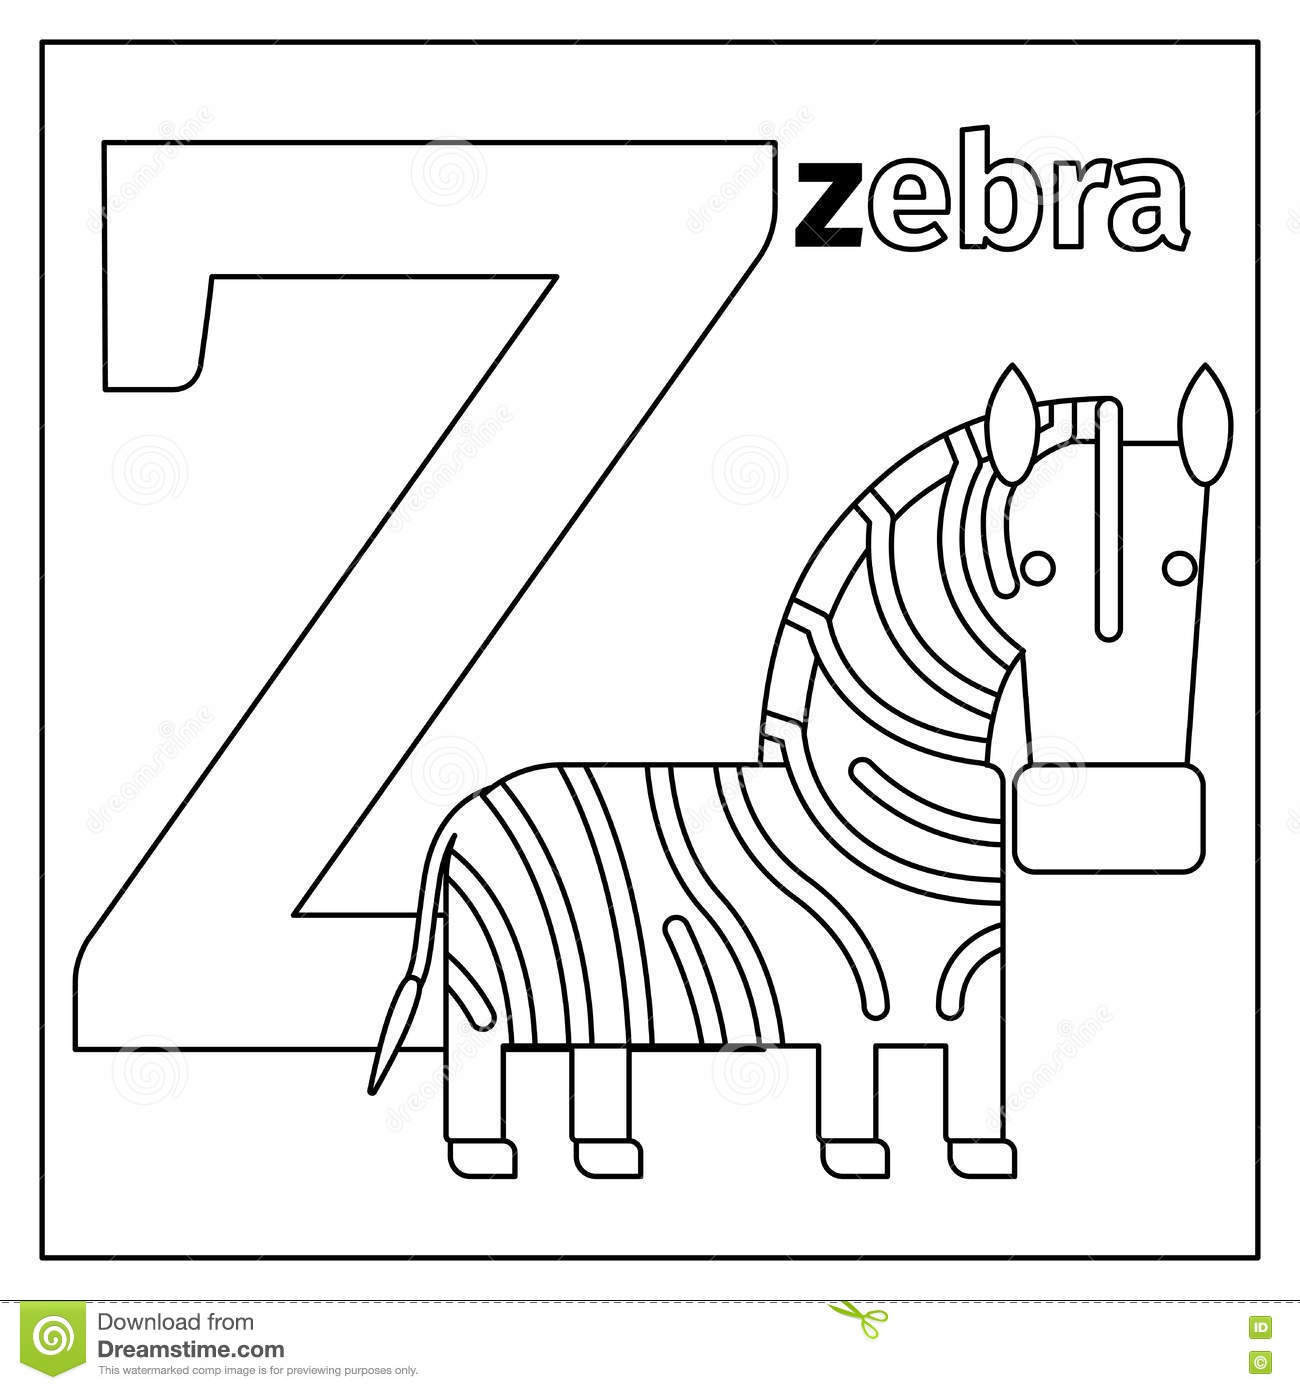 Zebra Letter Z Coloring Page Illustration 79427777 Megapixl